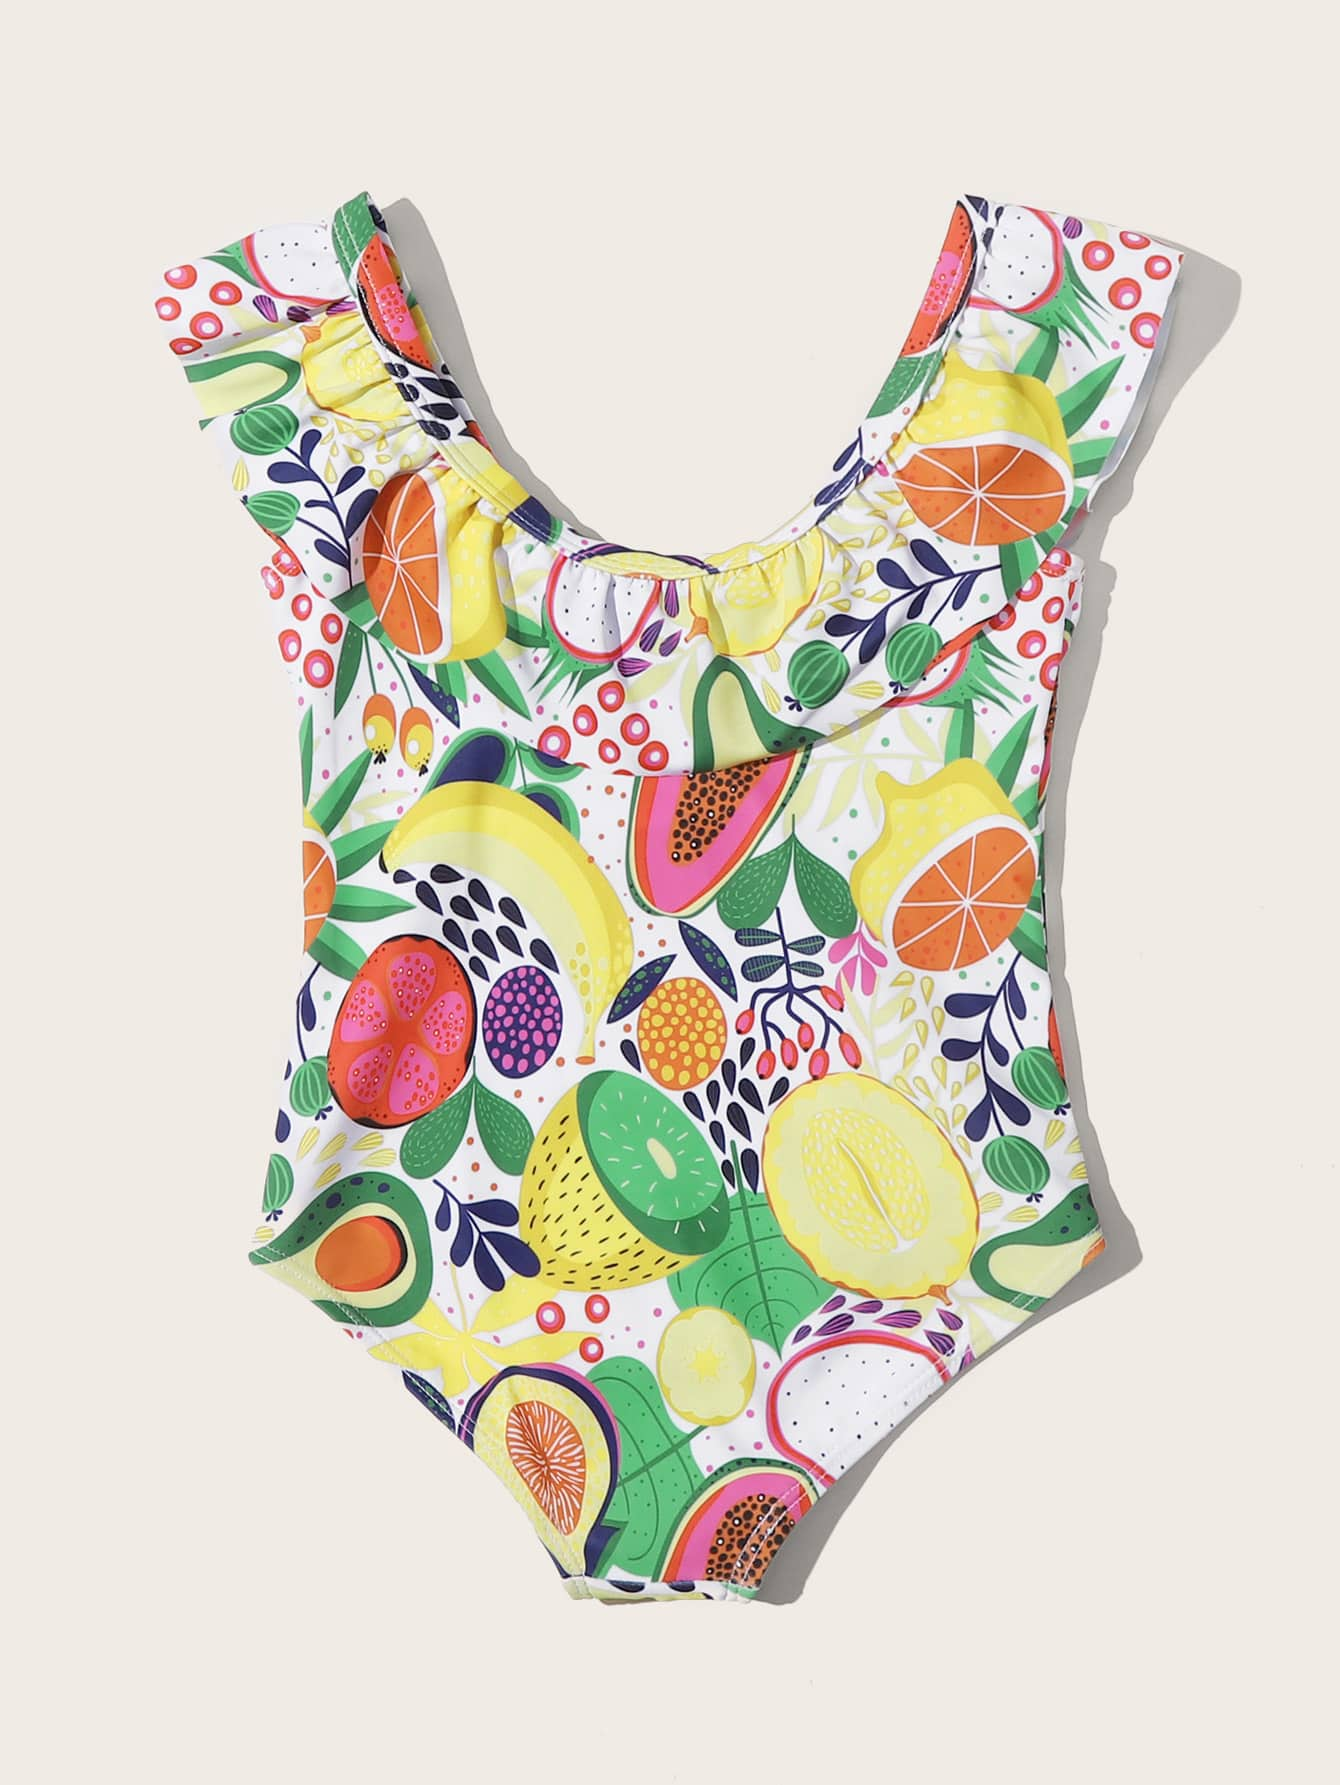 Toddler Girls Fruit Print Ruffle One Piece Swimsuit - FLJ CORPORATIONS